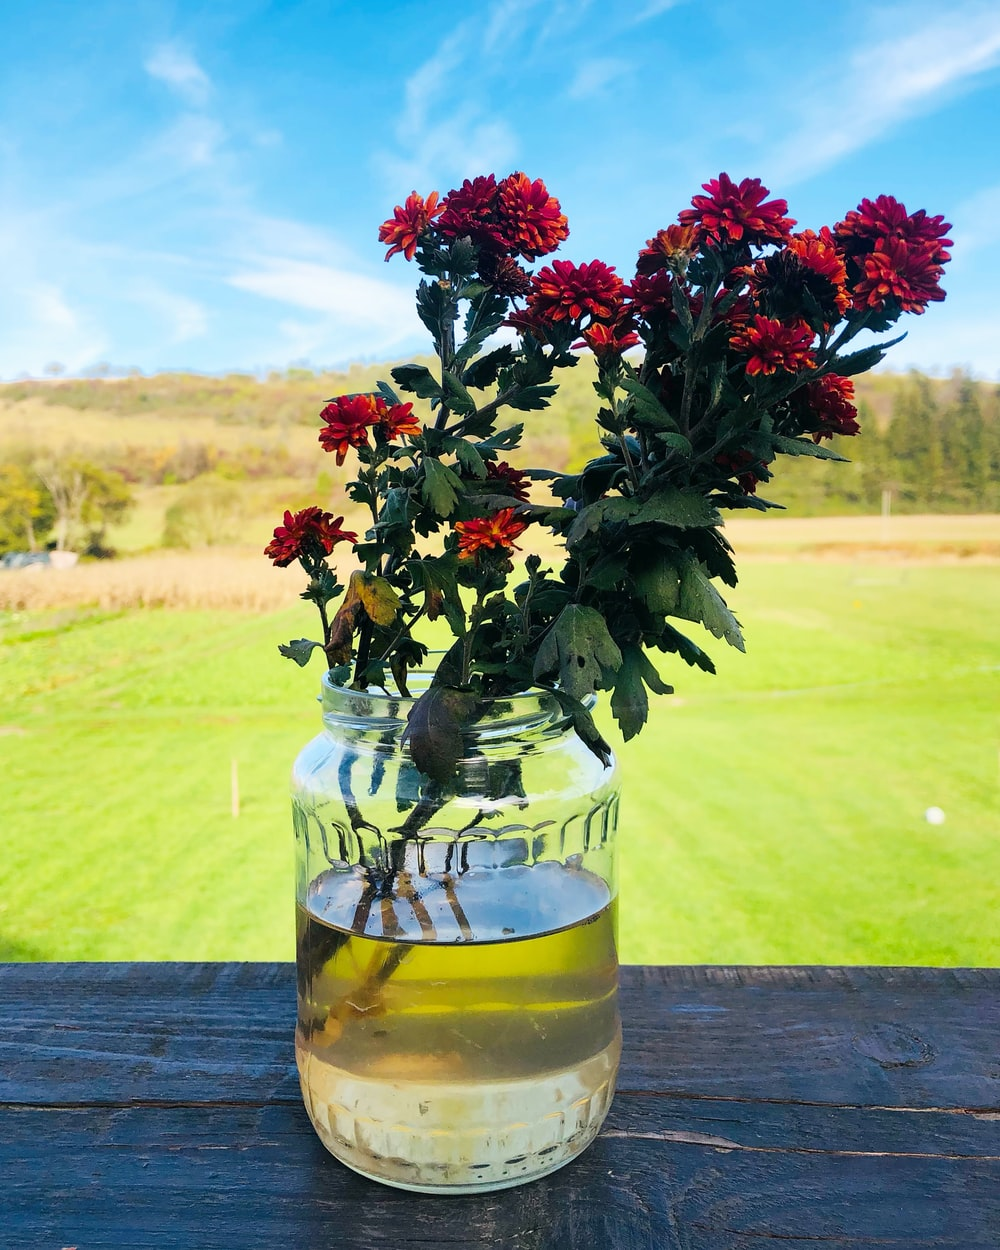 red and green plant in yellow glass vase on brown wooden table